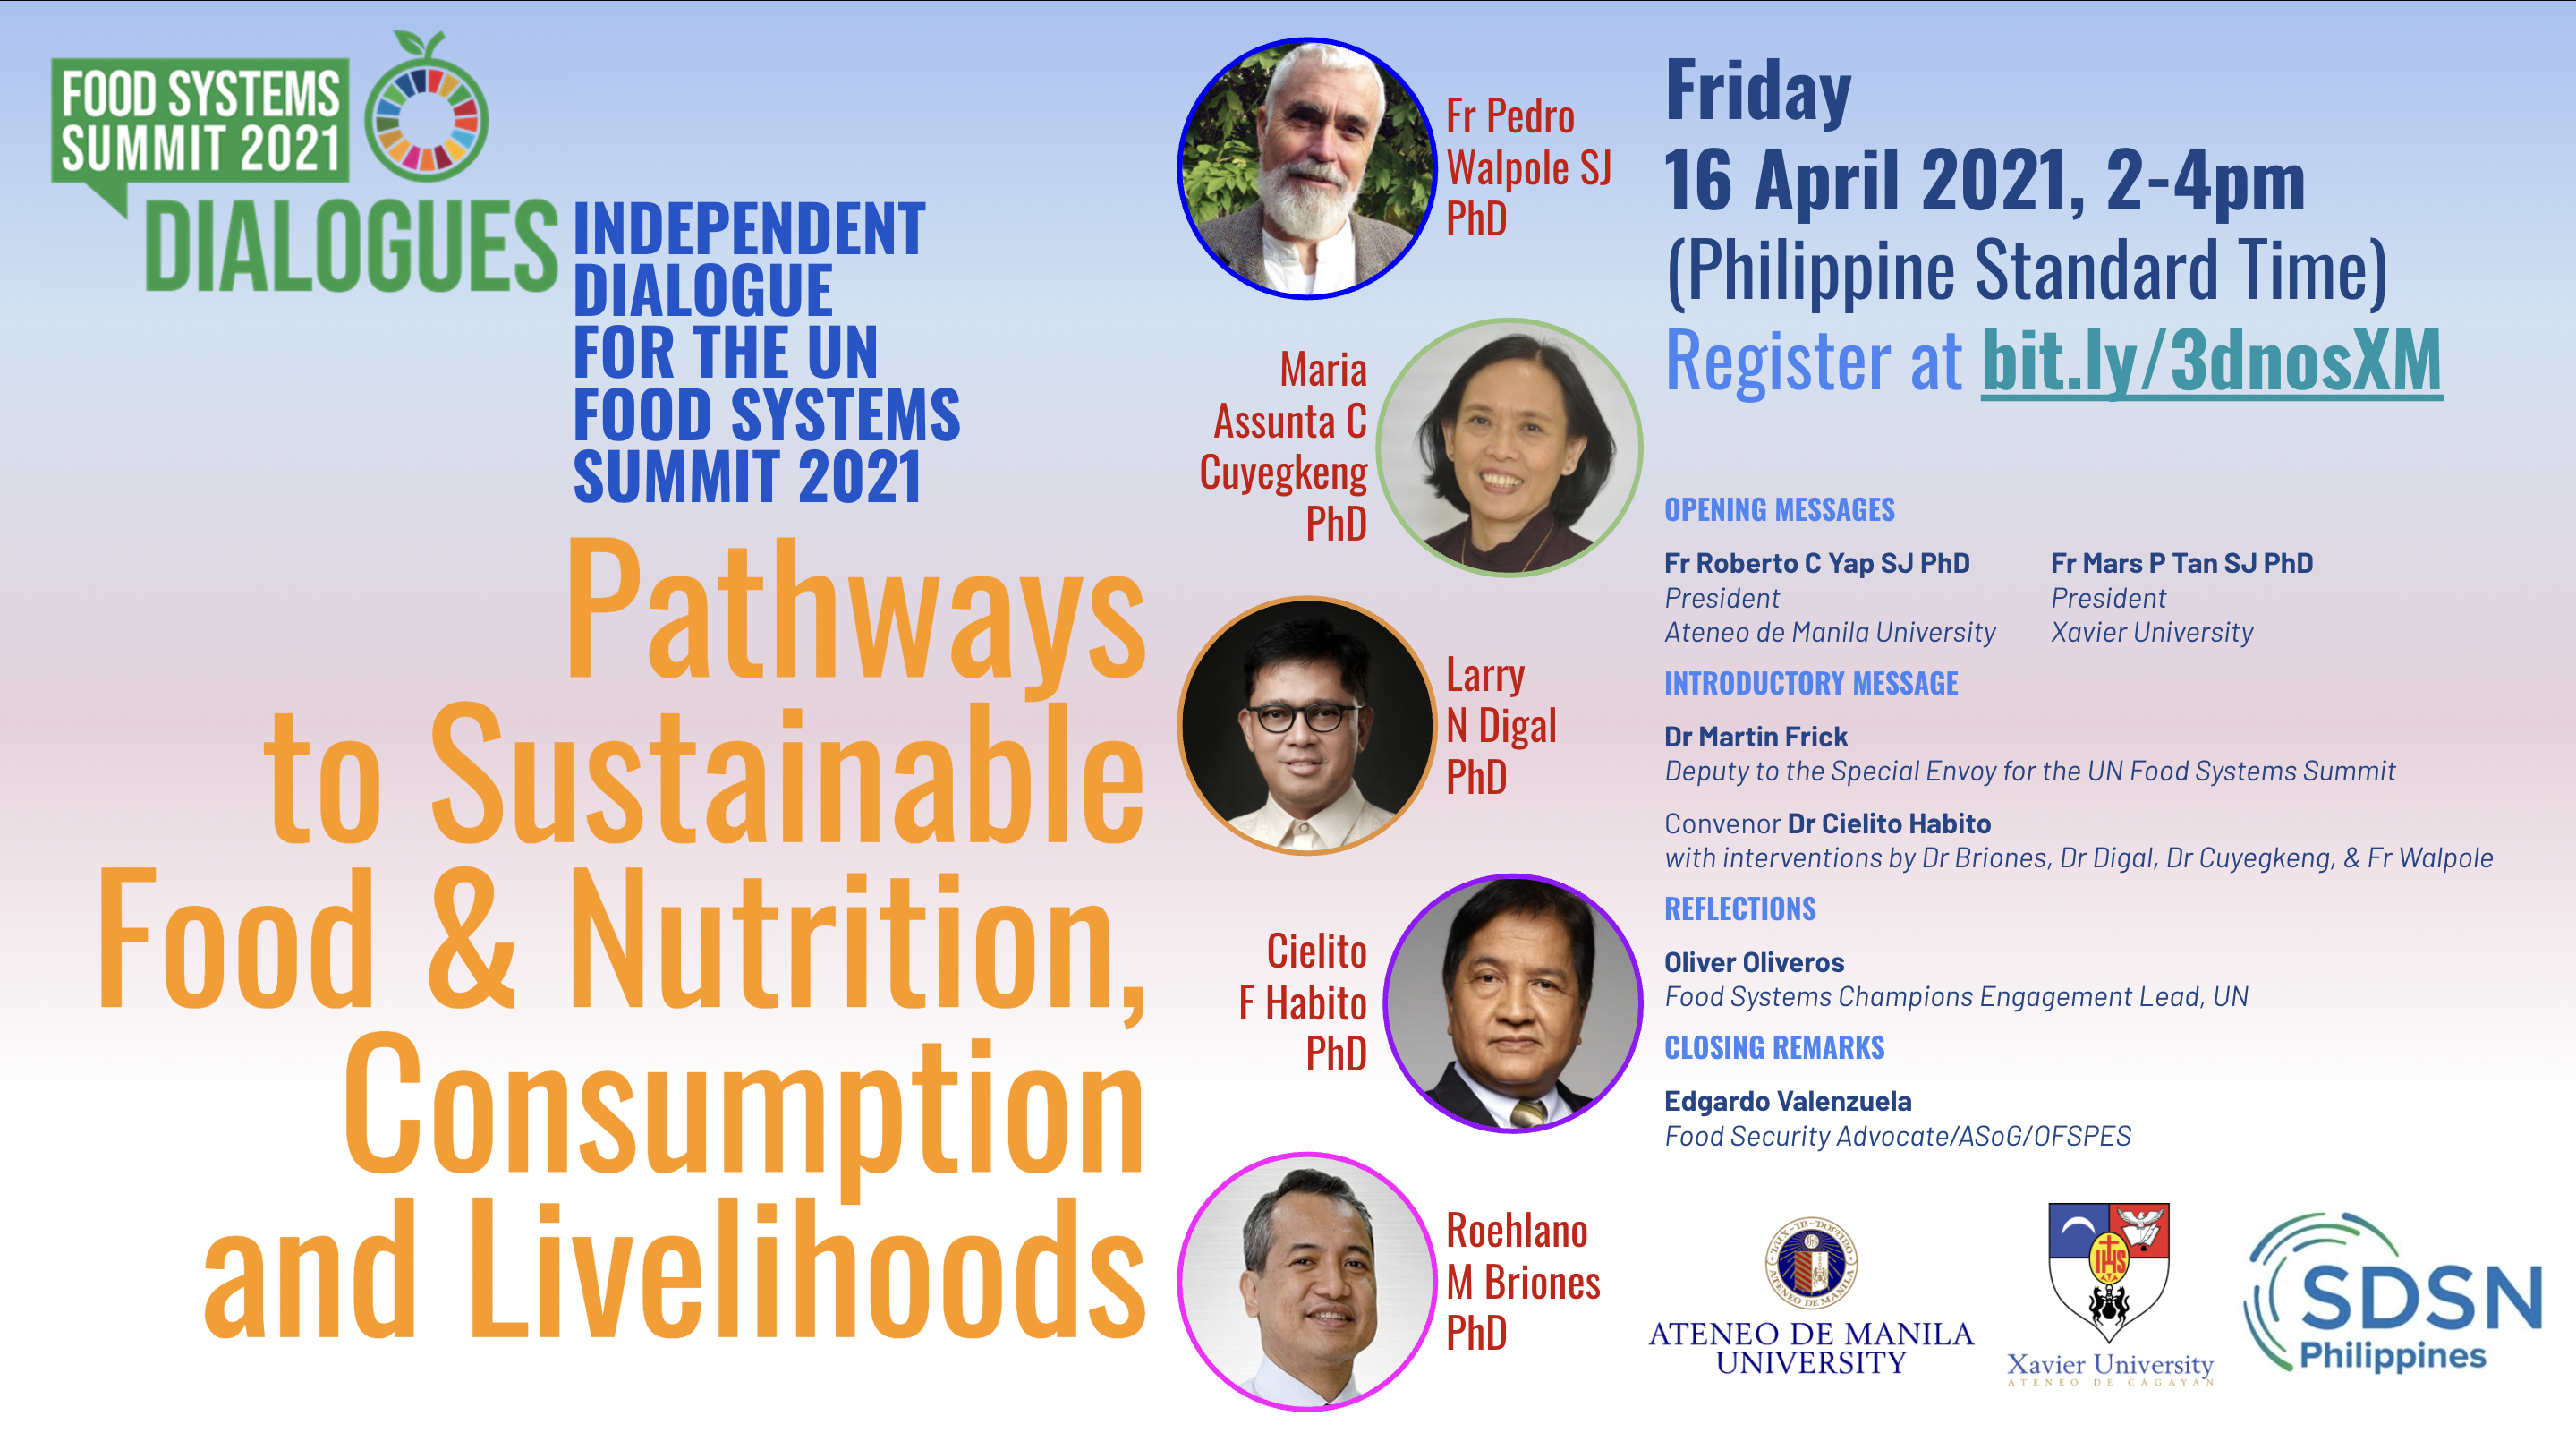 Exploring pathways to sustainable food and nutrition, consumption, and livelihoods: An independent dialogue for the UN Food Systems Summit 2021